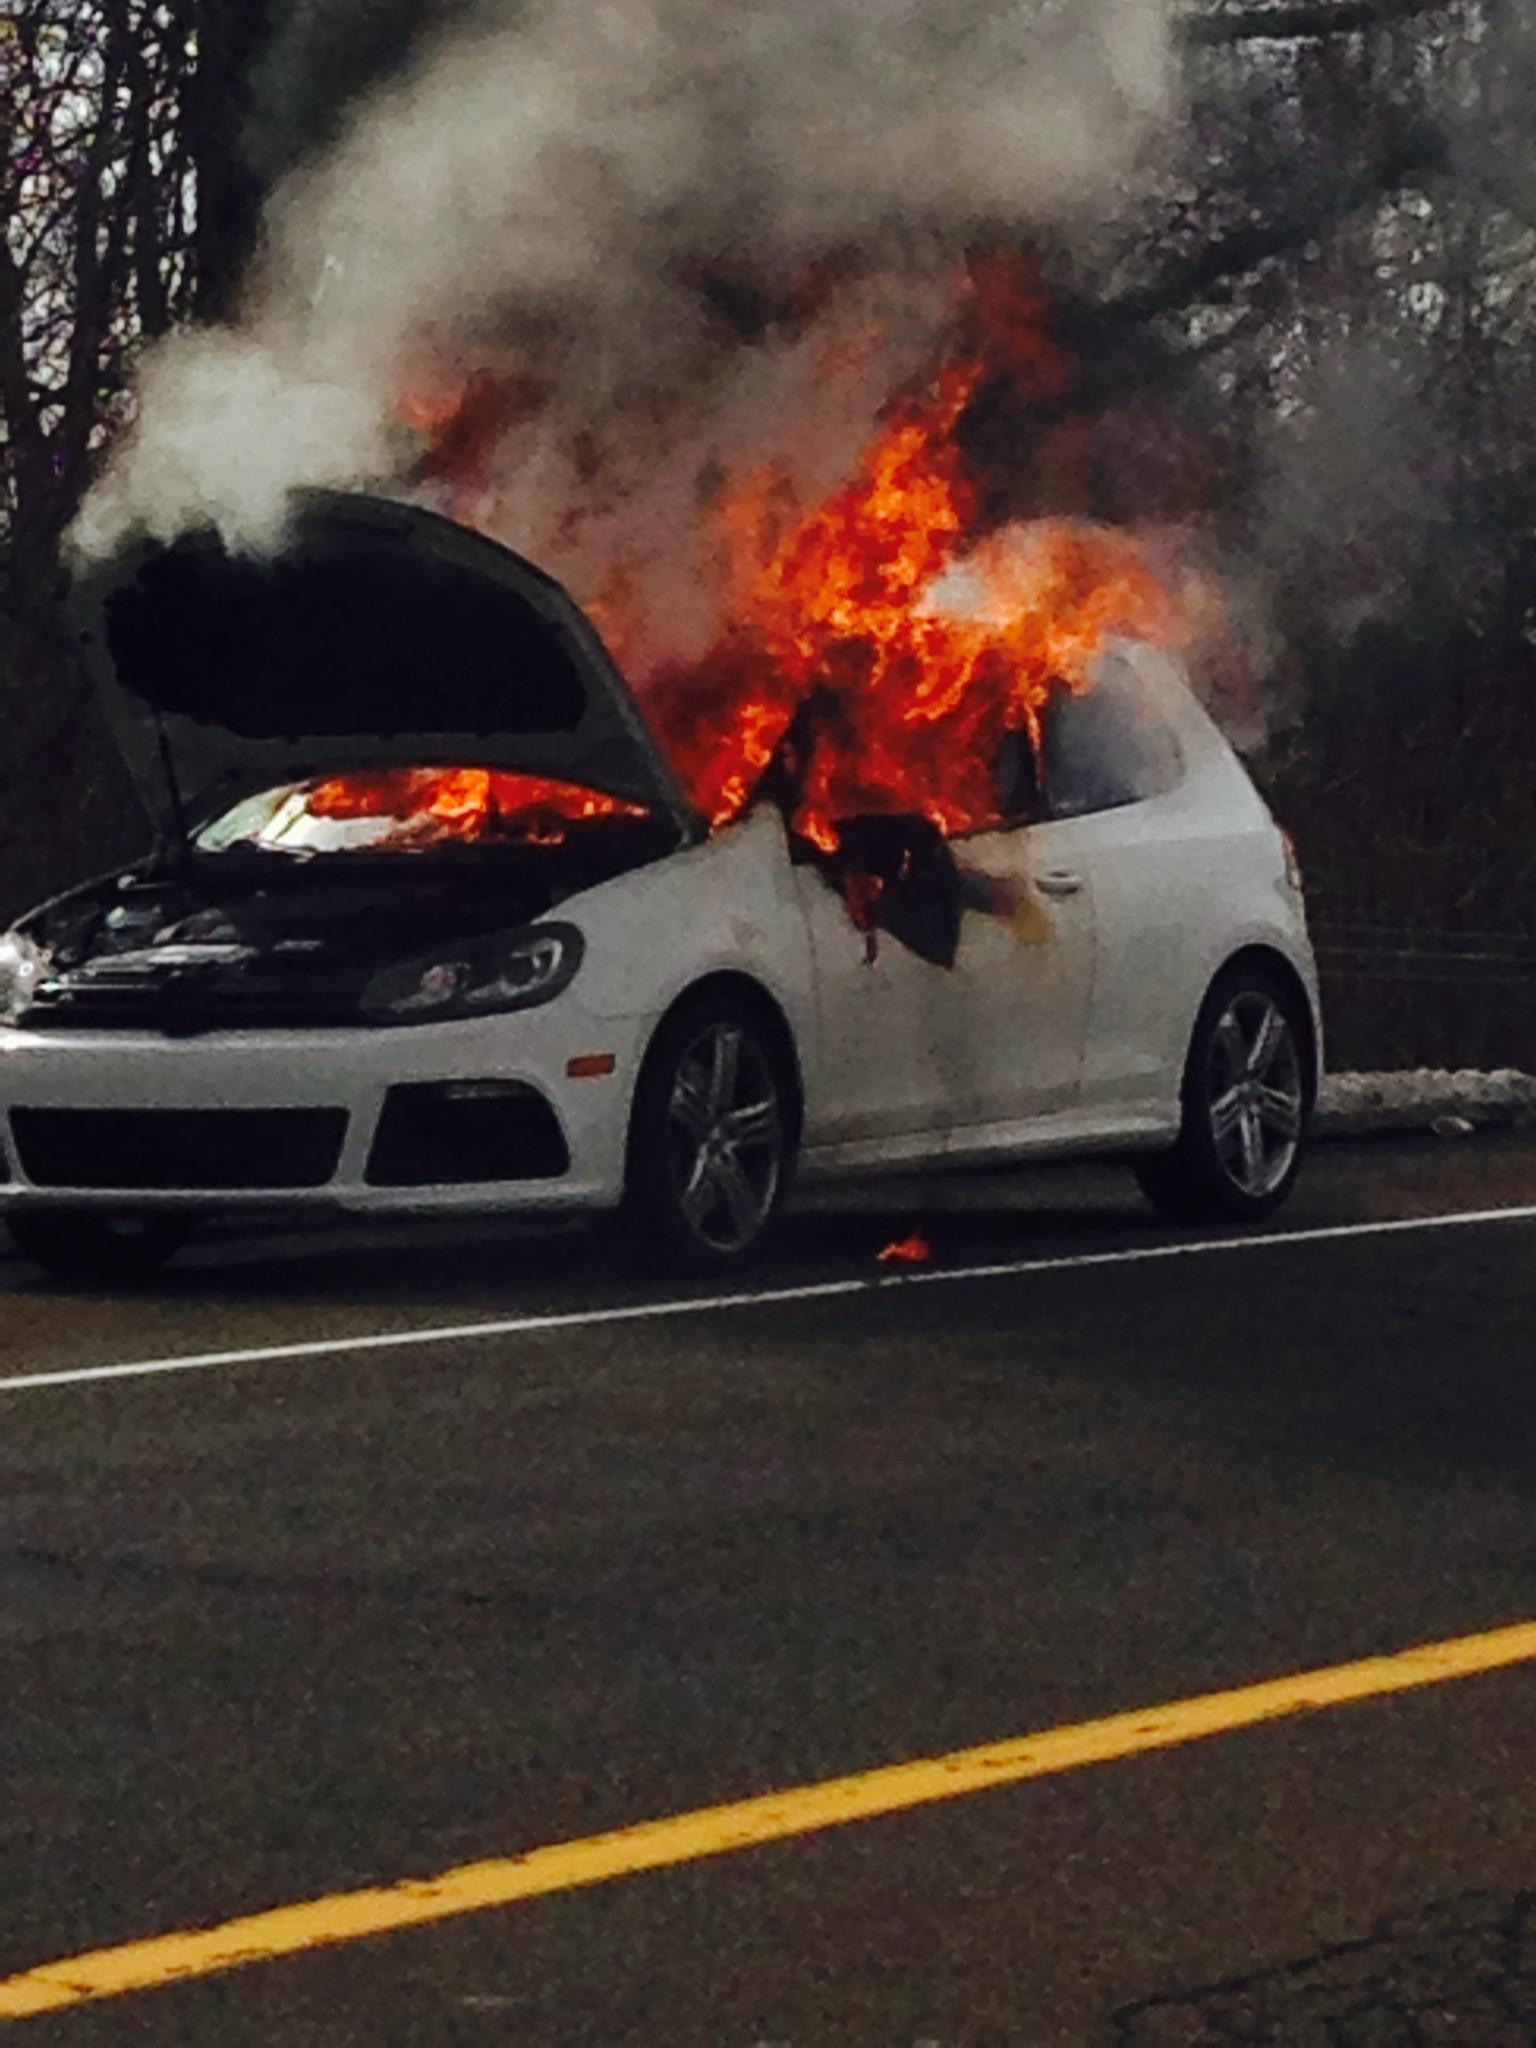 A car fire on I-95 in Fairfield closed an exit ramp for an hour on Sunday.